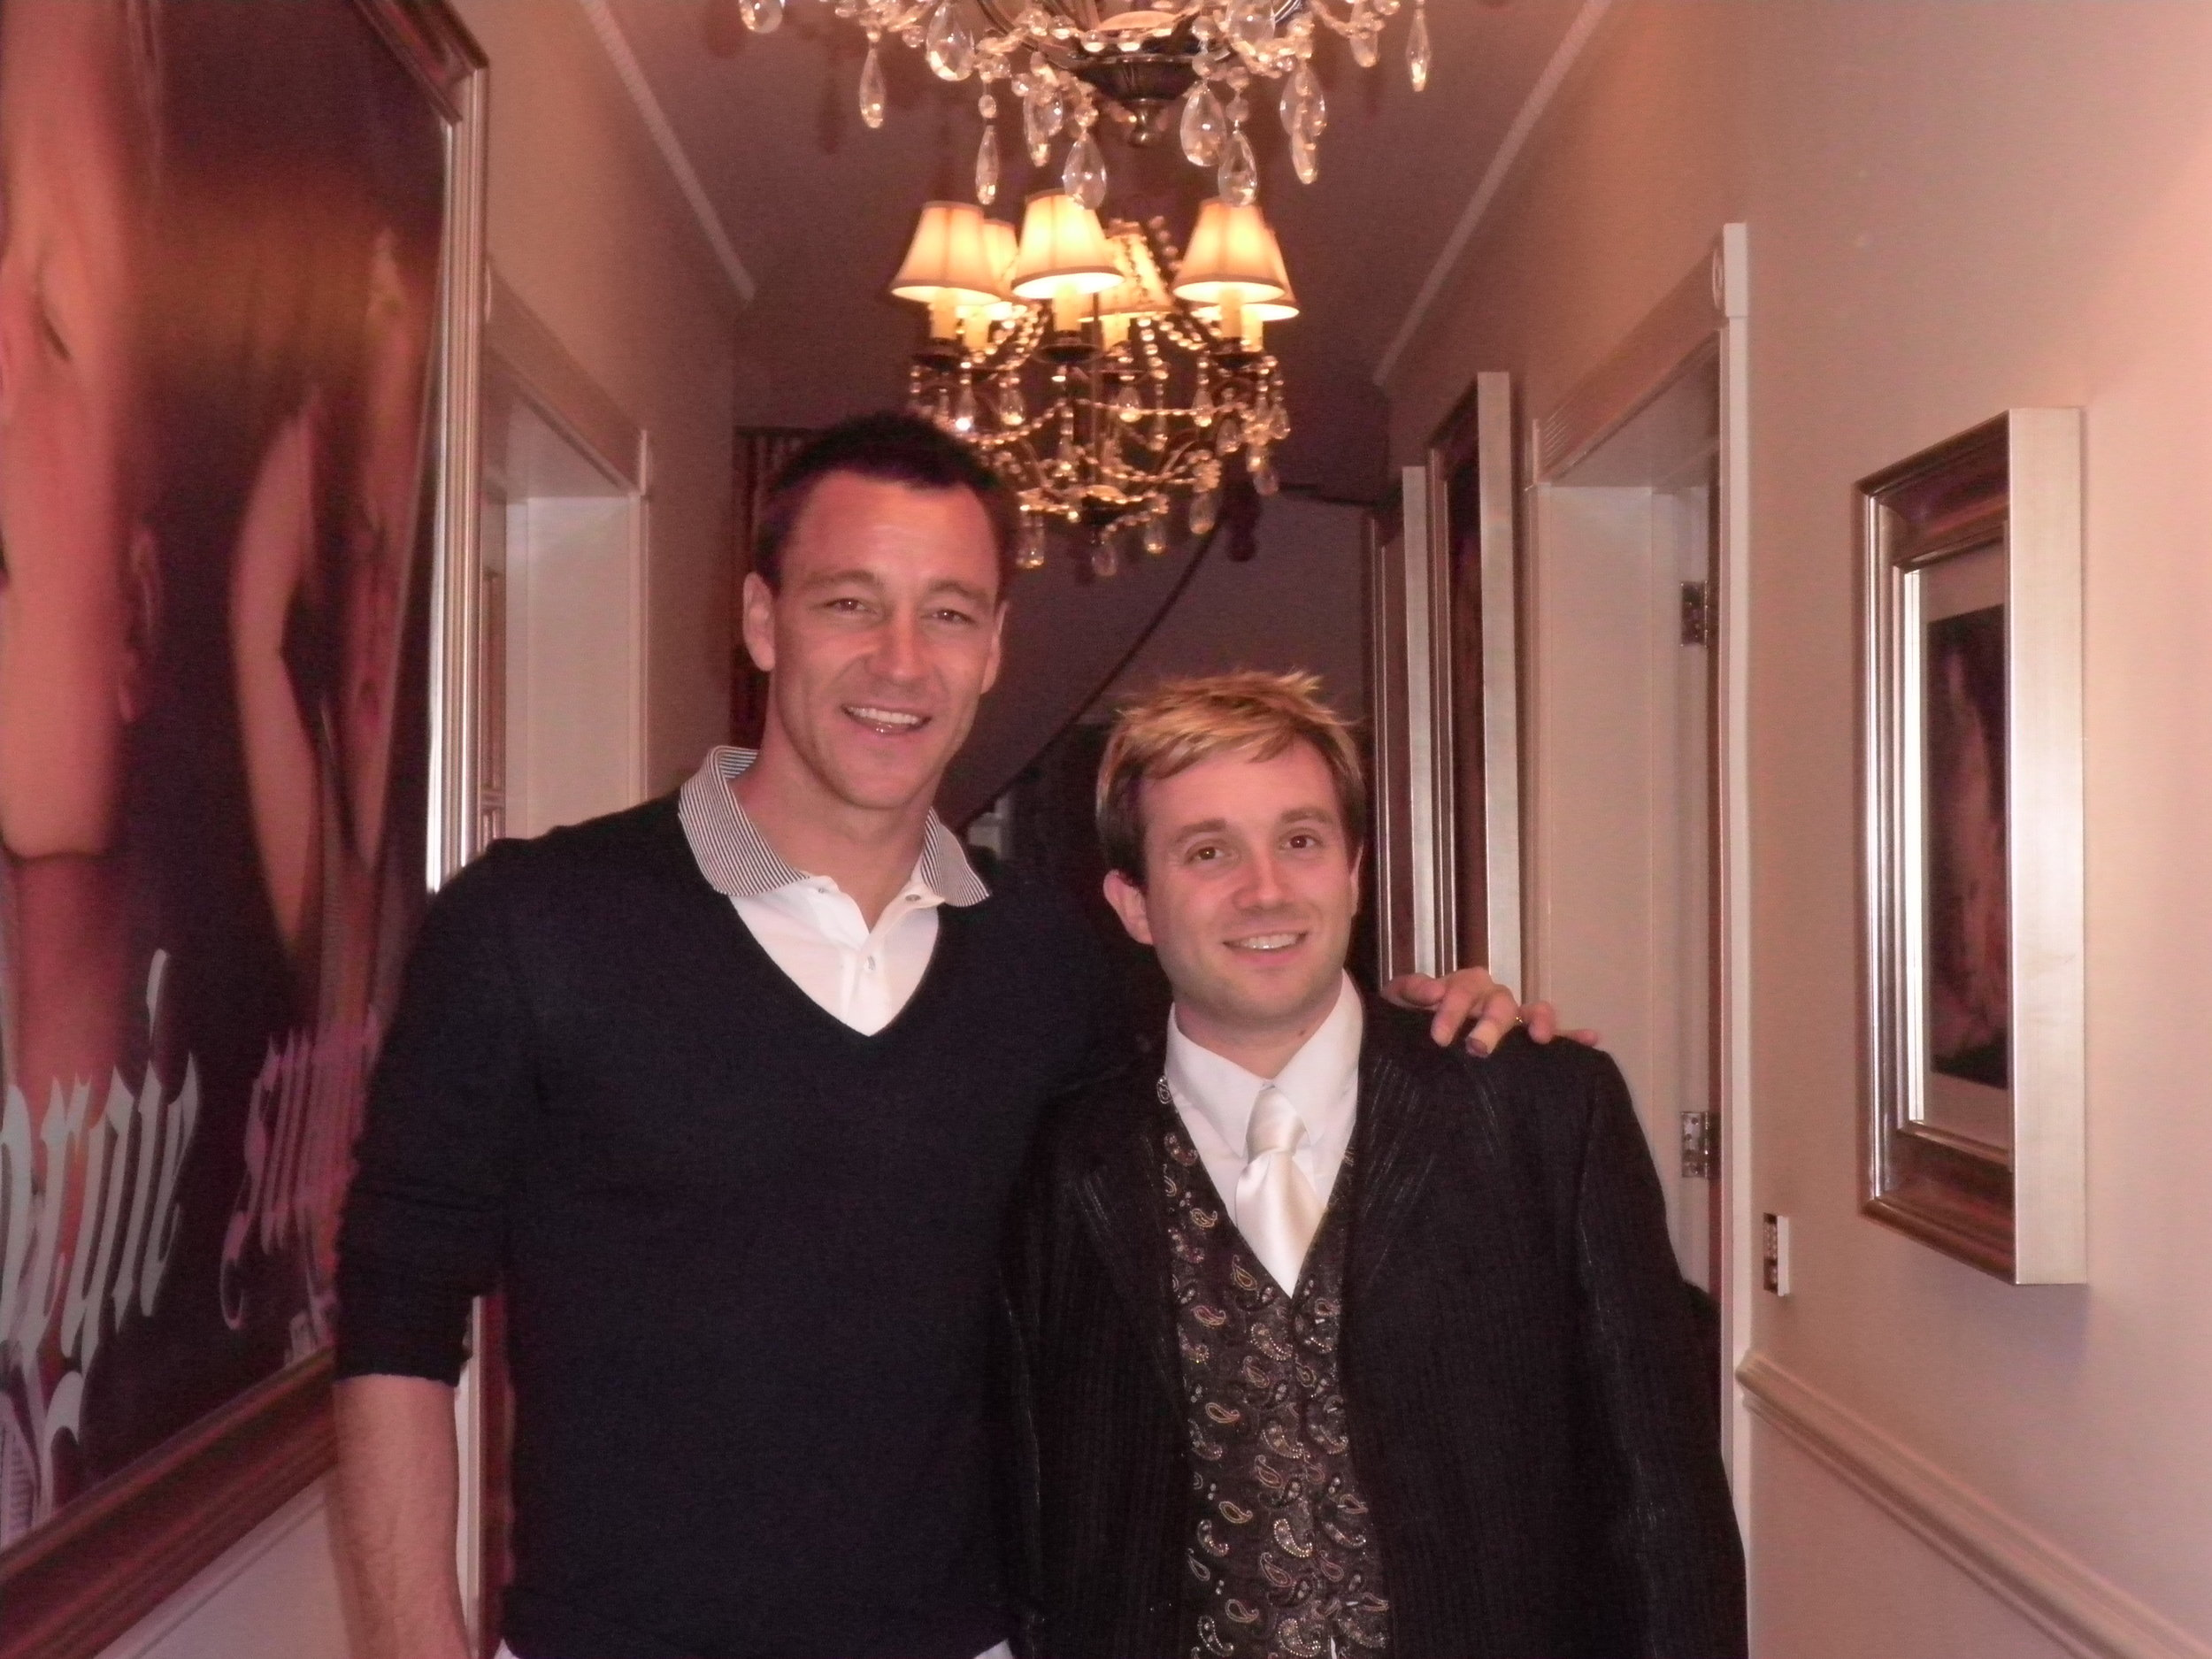 """Thank you Matthew, see you again next year.""  John Terry  England Football Captain at his house party."